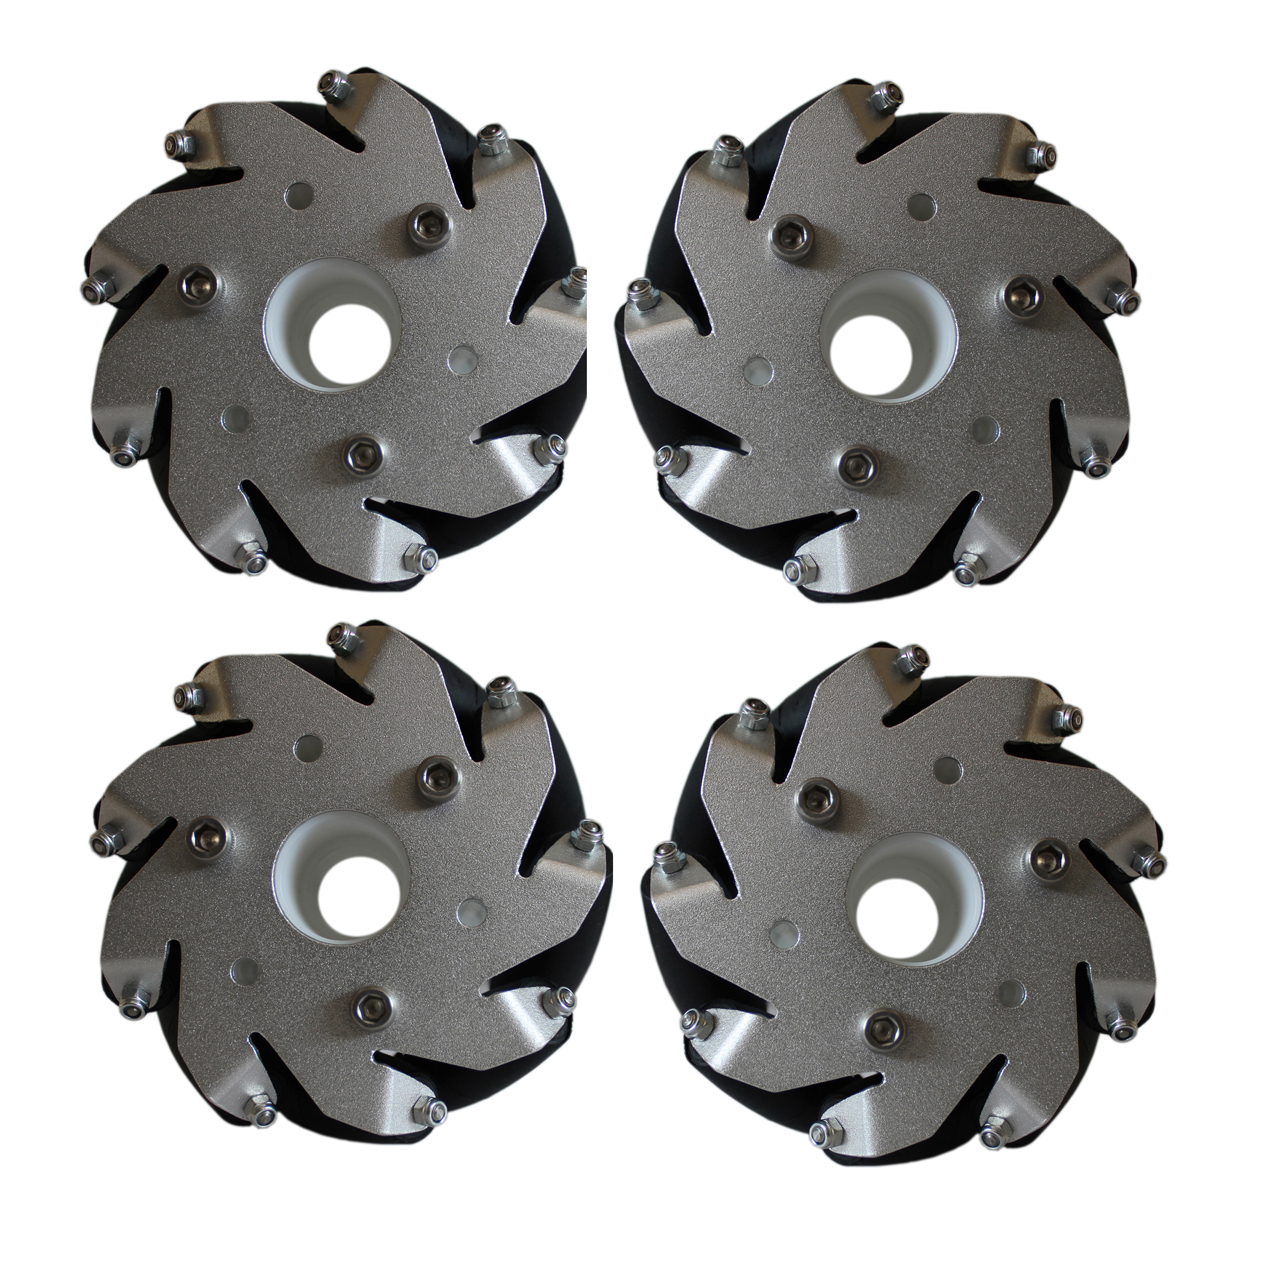 100mm Aluminium Mecanum Bearing Rollers Wheels Set (2-Left & 2_Right) -4 pieces